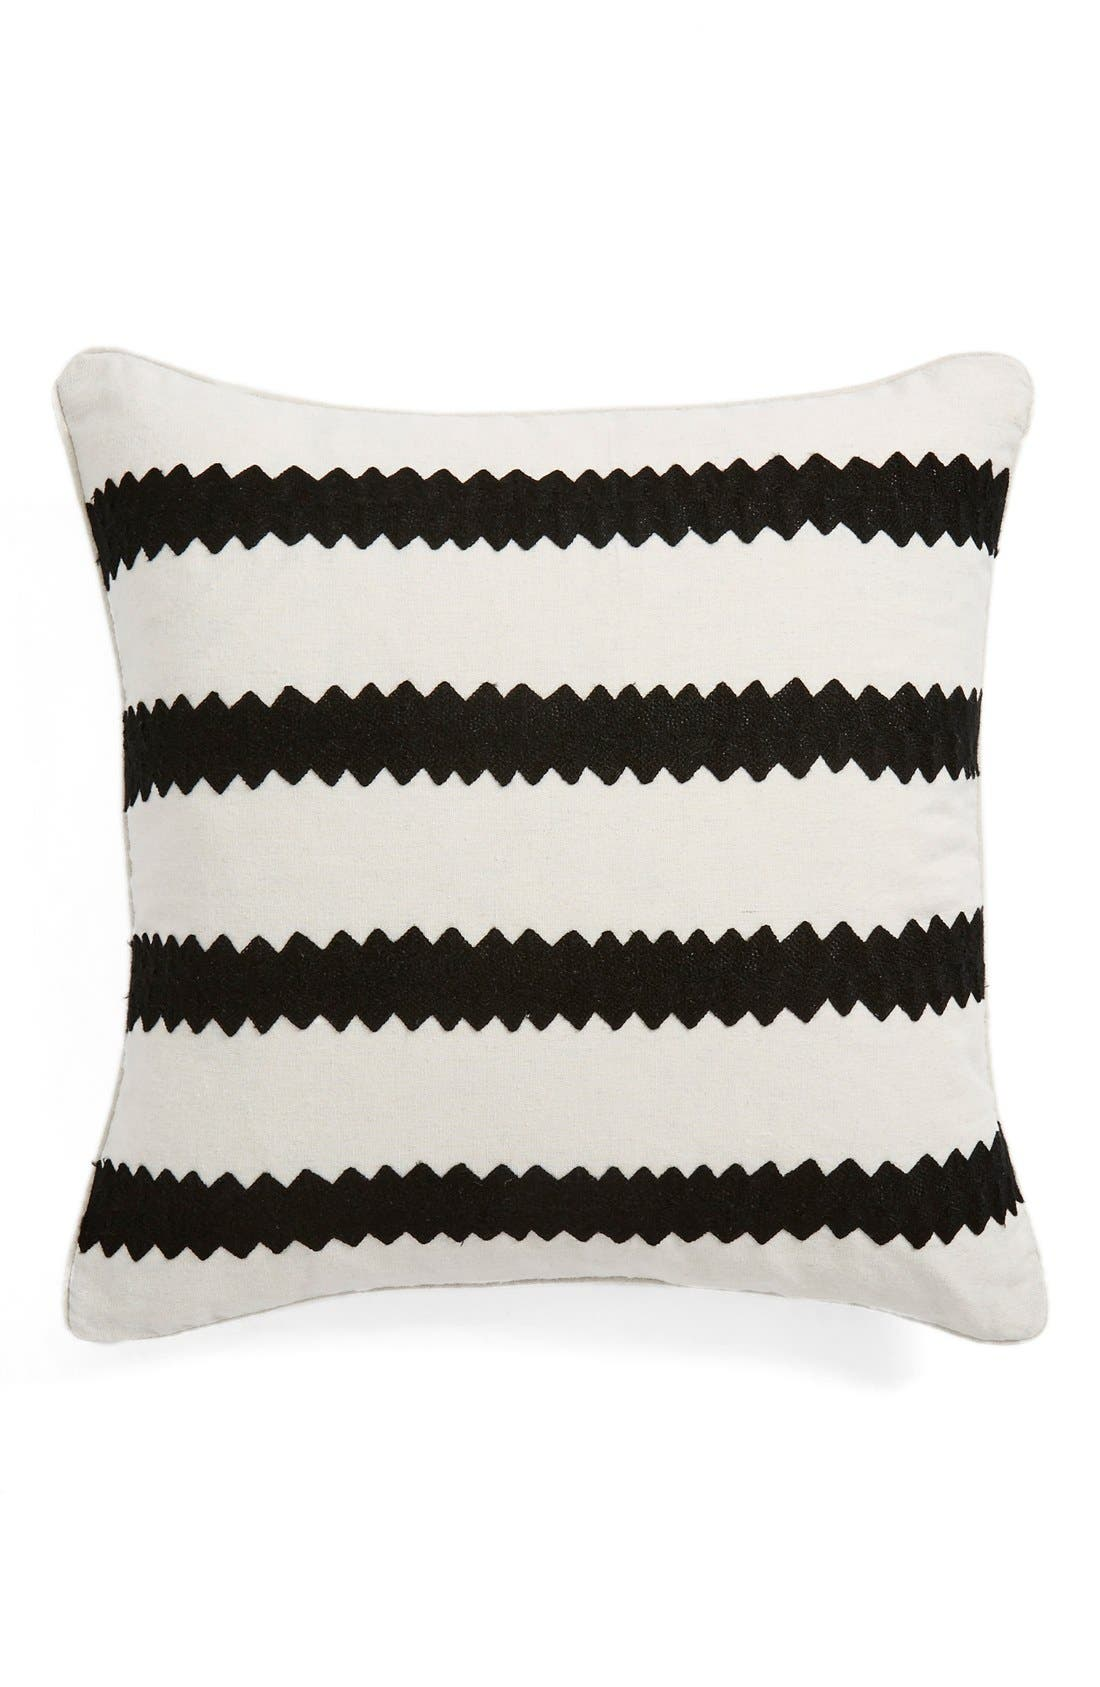 Levtex 'Taza' Stripe Pillow